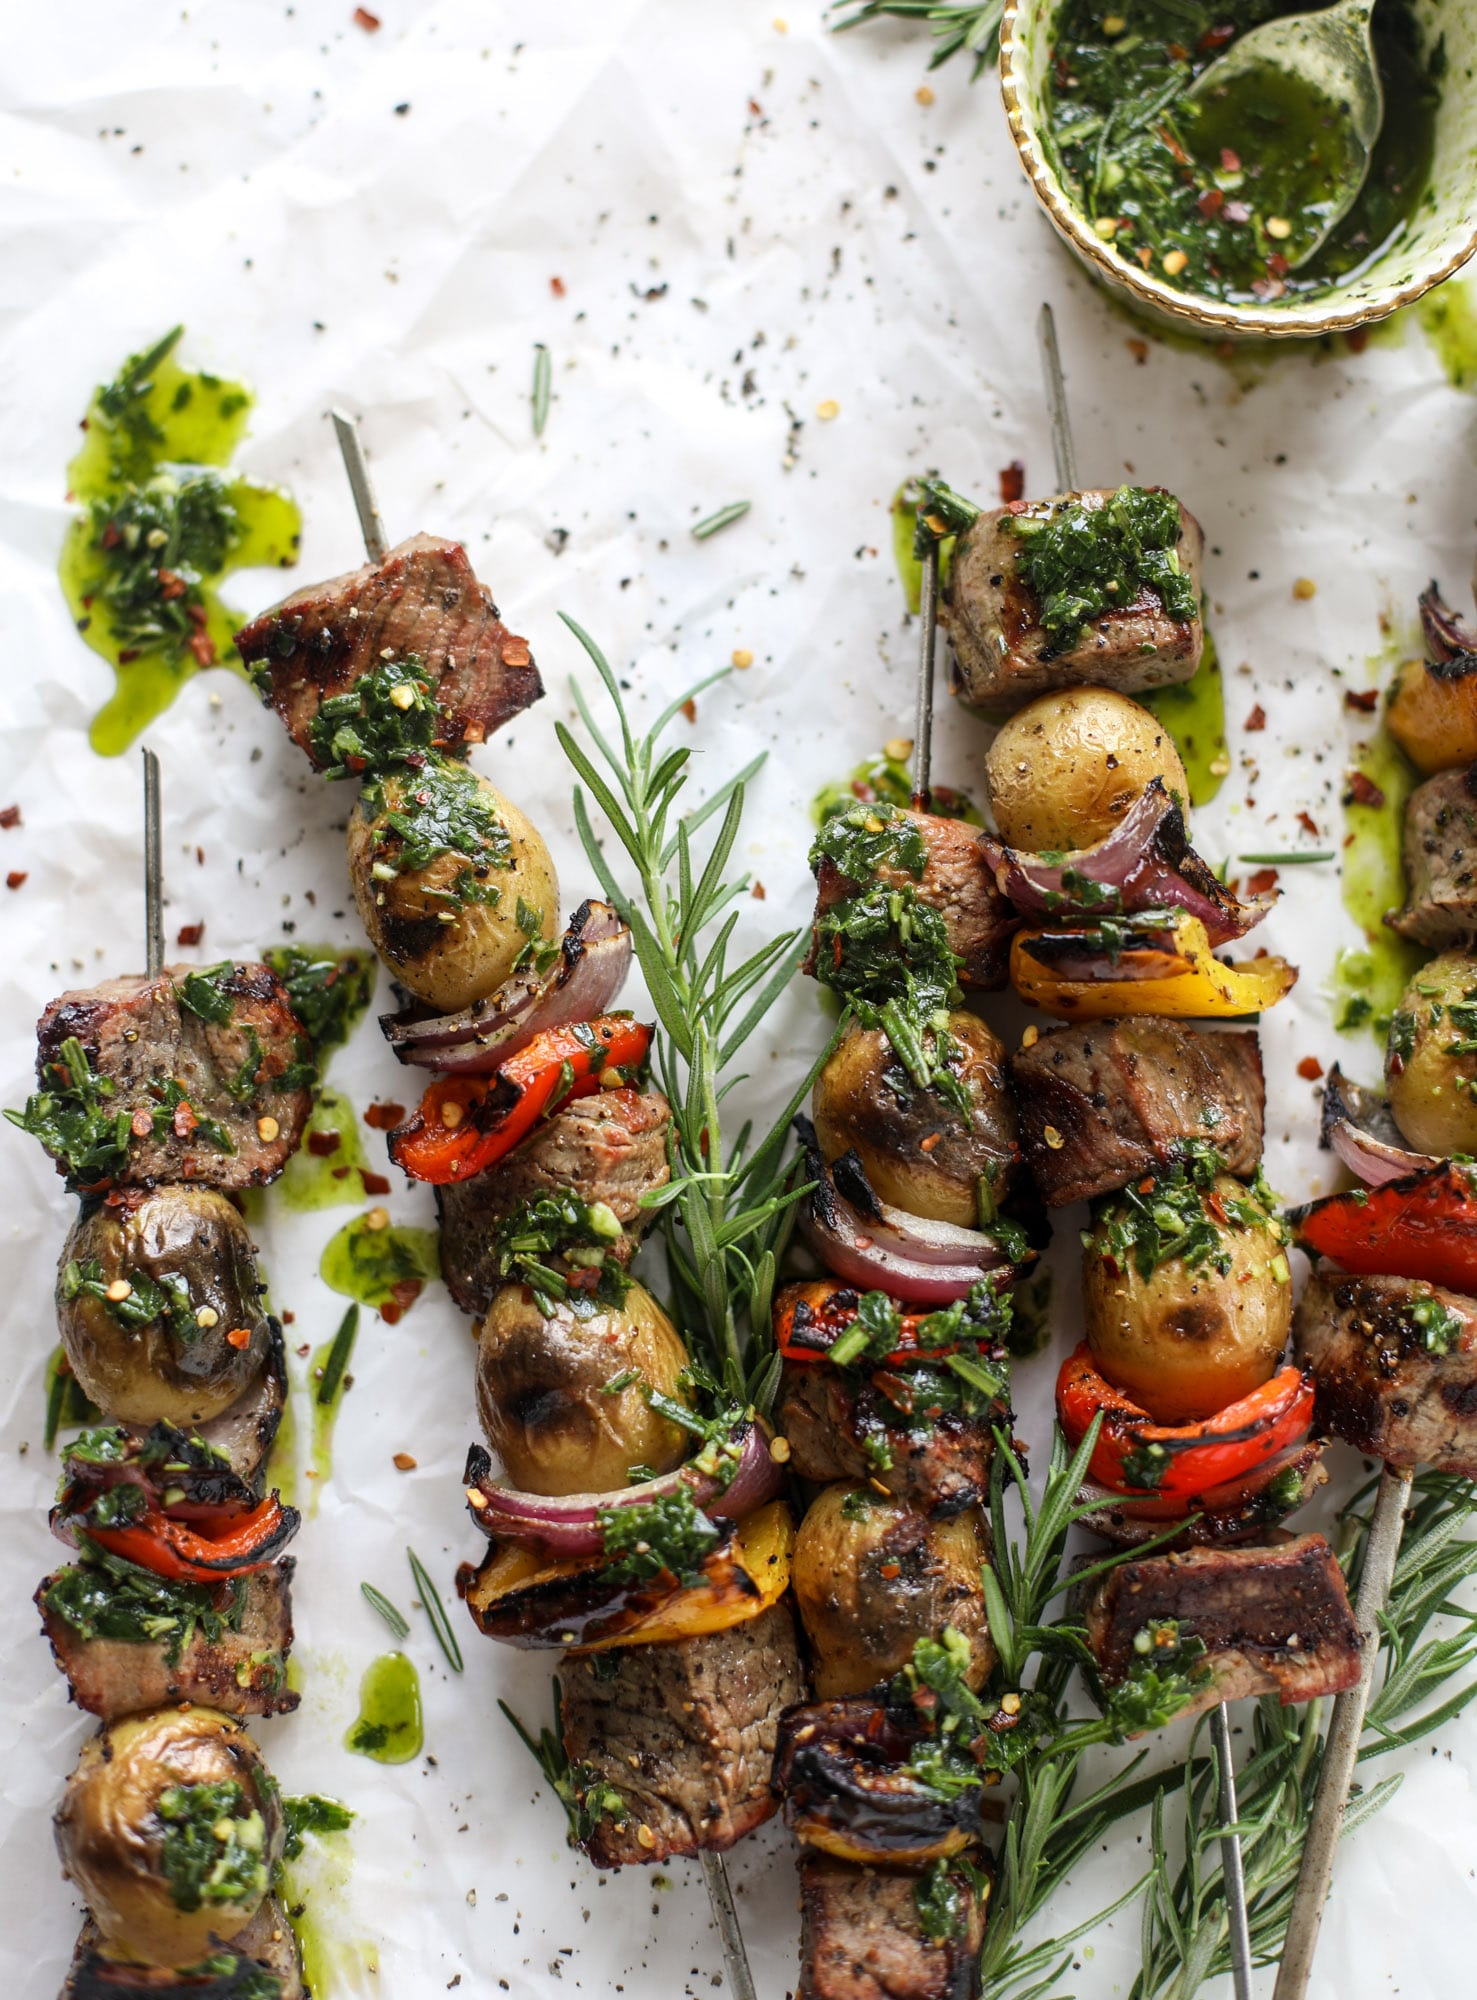 Filet and Potato Skewers